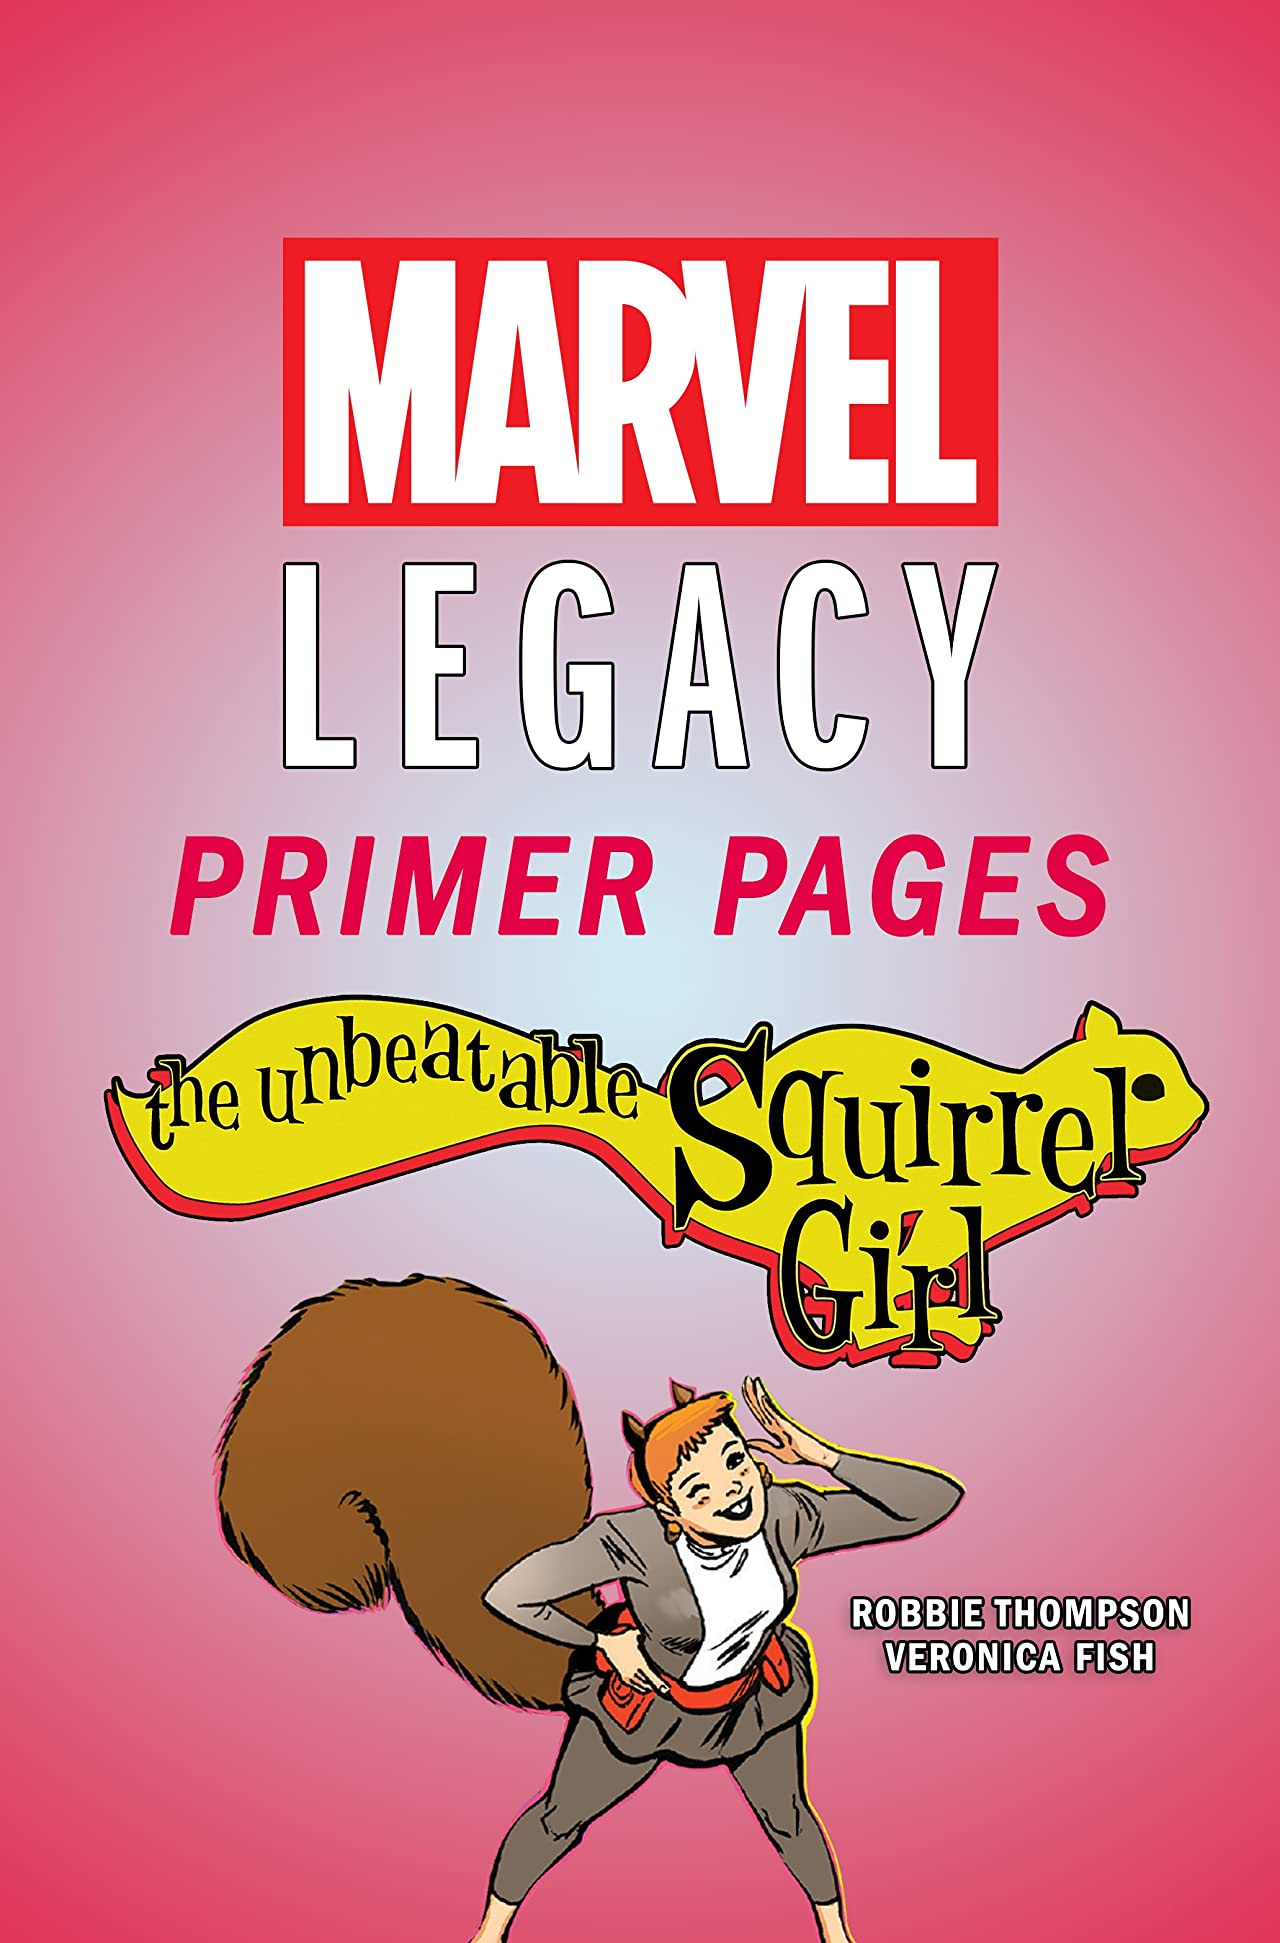 The Unbeatable Squirrel Girl - Marvel Legacy Primer Pages